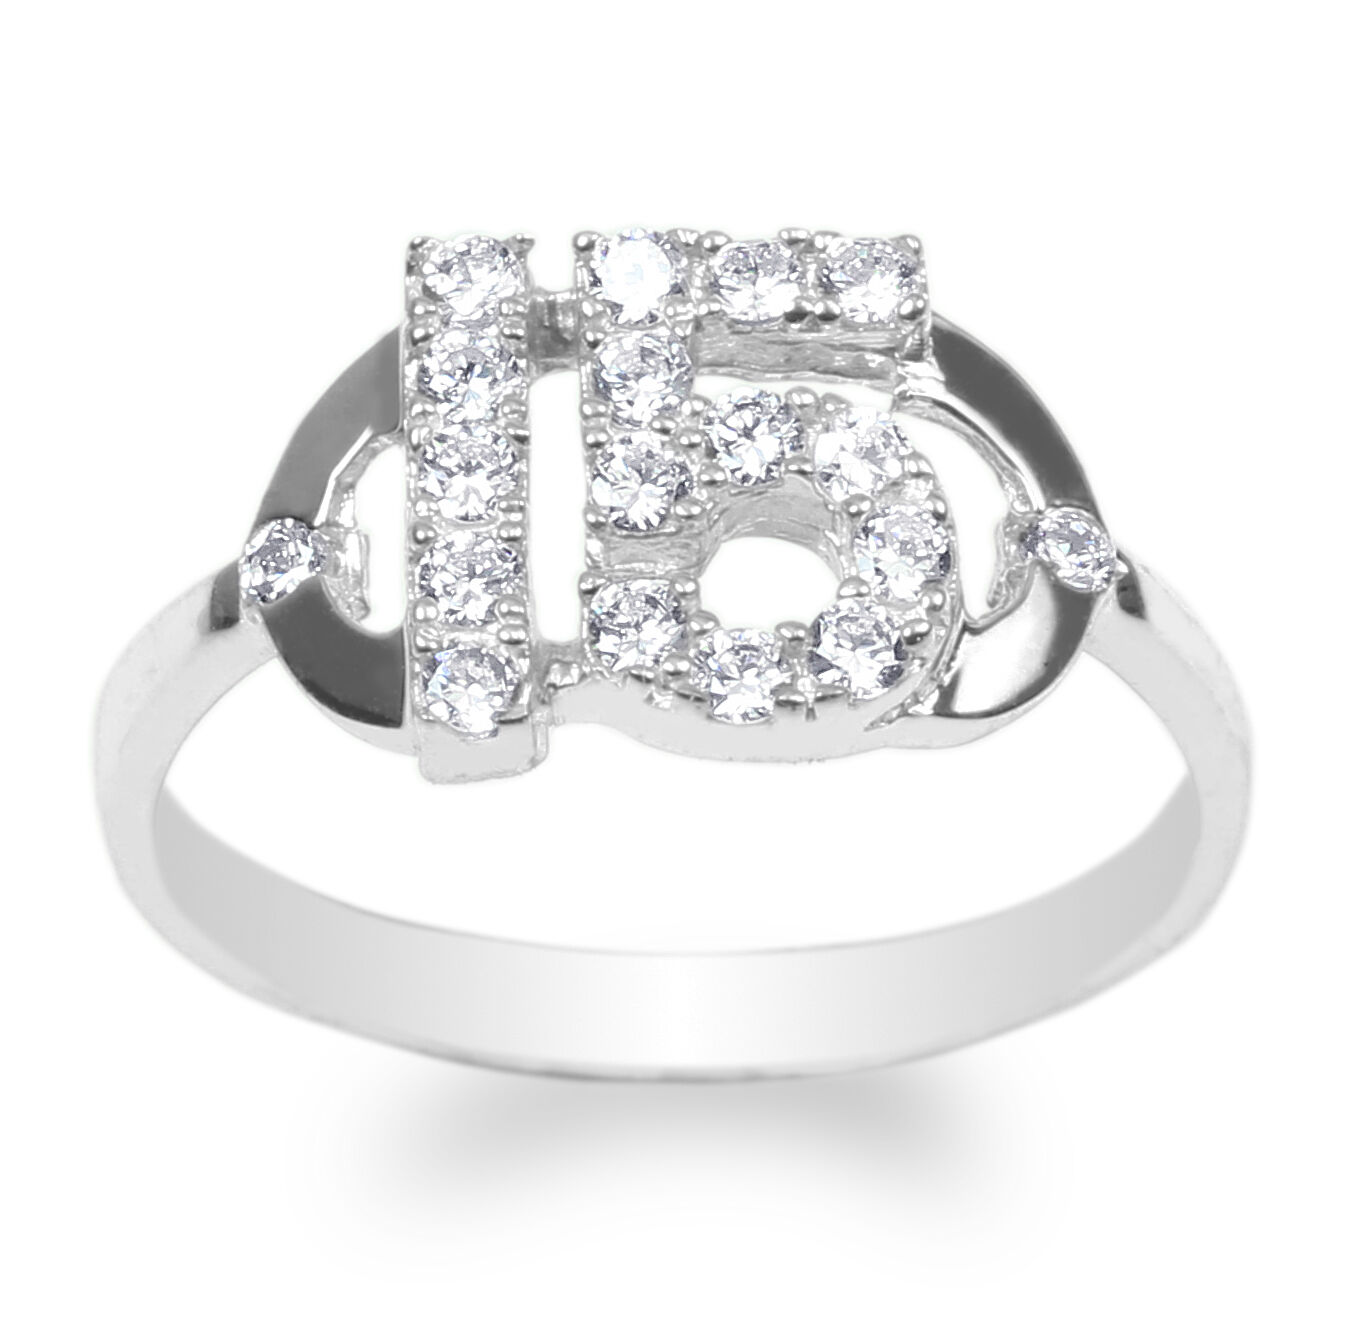 JamesJenny 10K White gold Round CZ Embedded 15 Anos Quinceanera Ring Size 4-10